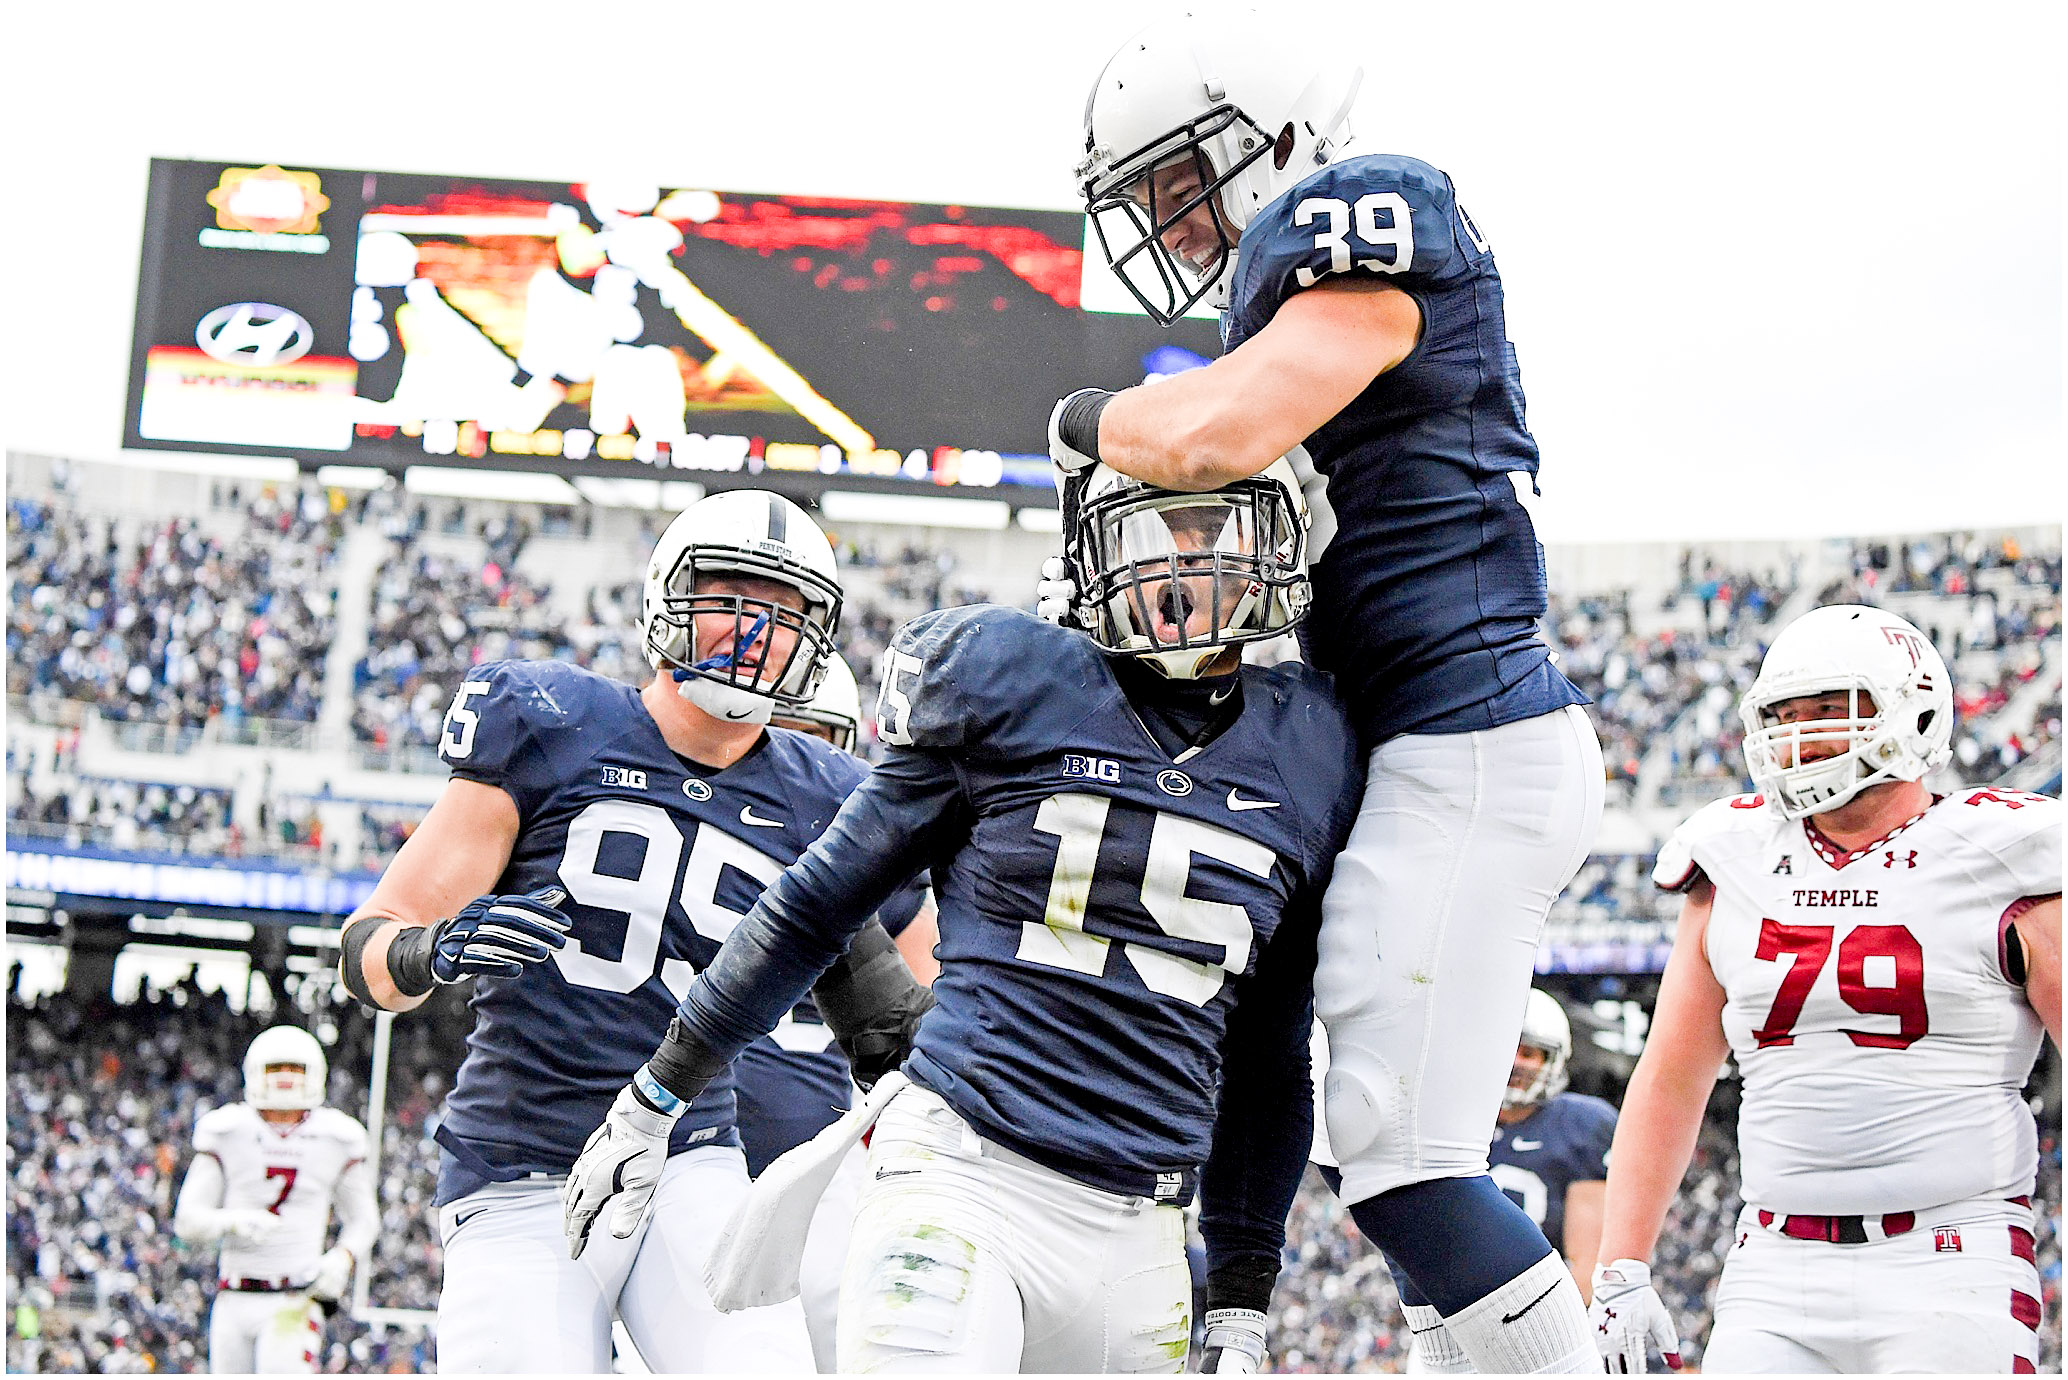 Carl Nassib (95), Grant Haley (15) and Jesse Della Valle (39) celebrate in the endzone after Haley's touchdown against Temple on Saturday, November 15, 2014. Penn State defeated Temple 30-13. Photo by Hannah Byrne